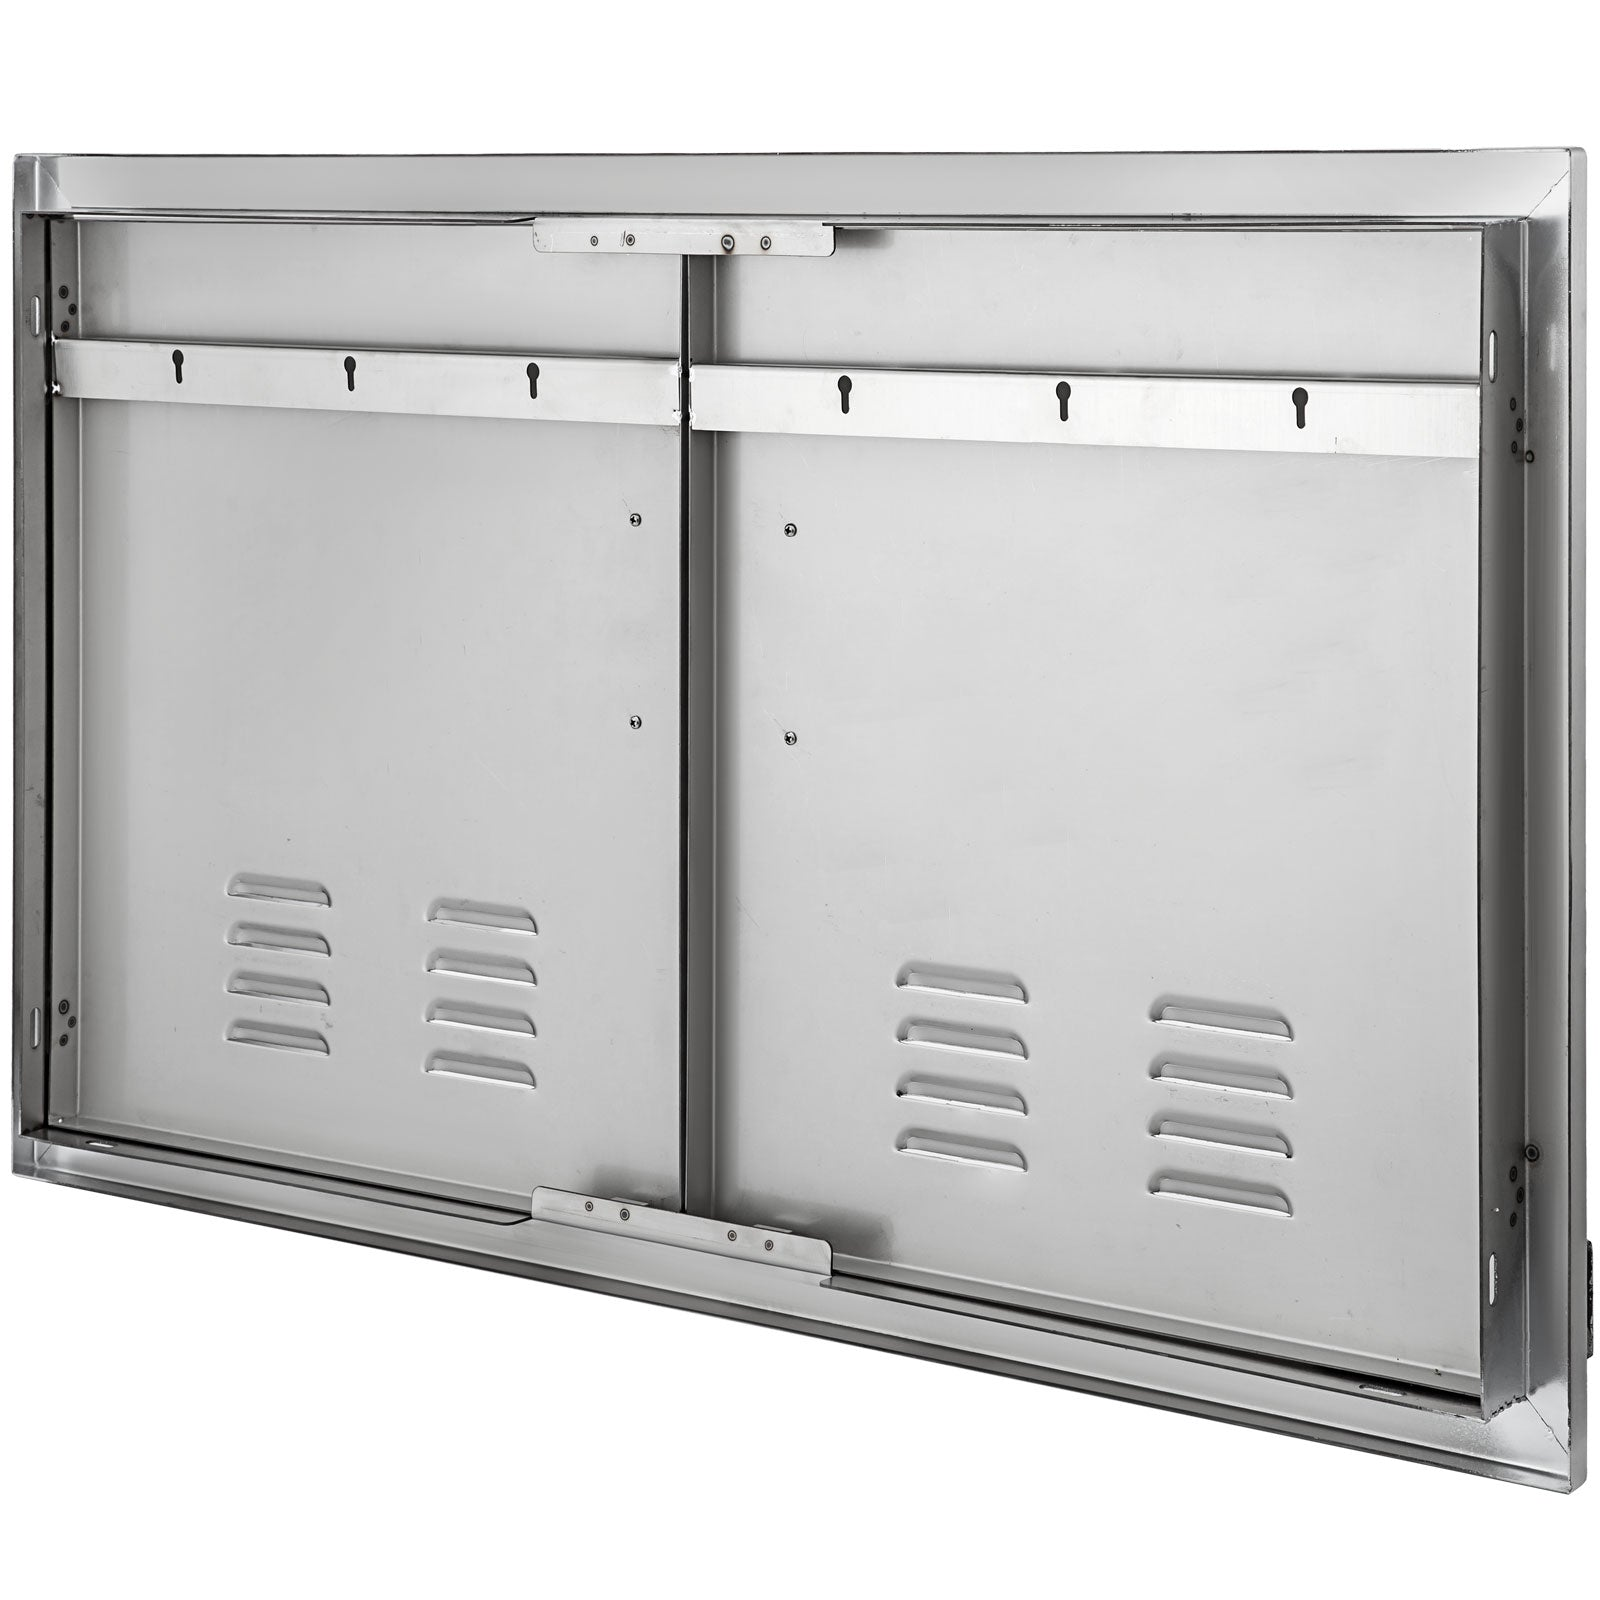 "36""x21"" Vented Double Access Door Double Island Outdoor Kitchen Ventilation"